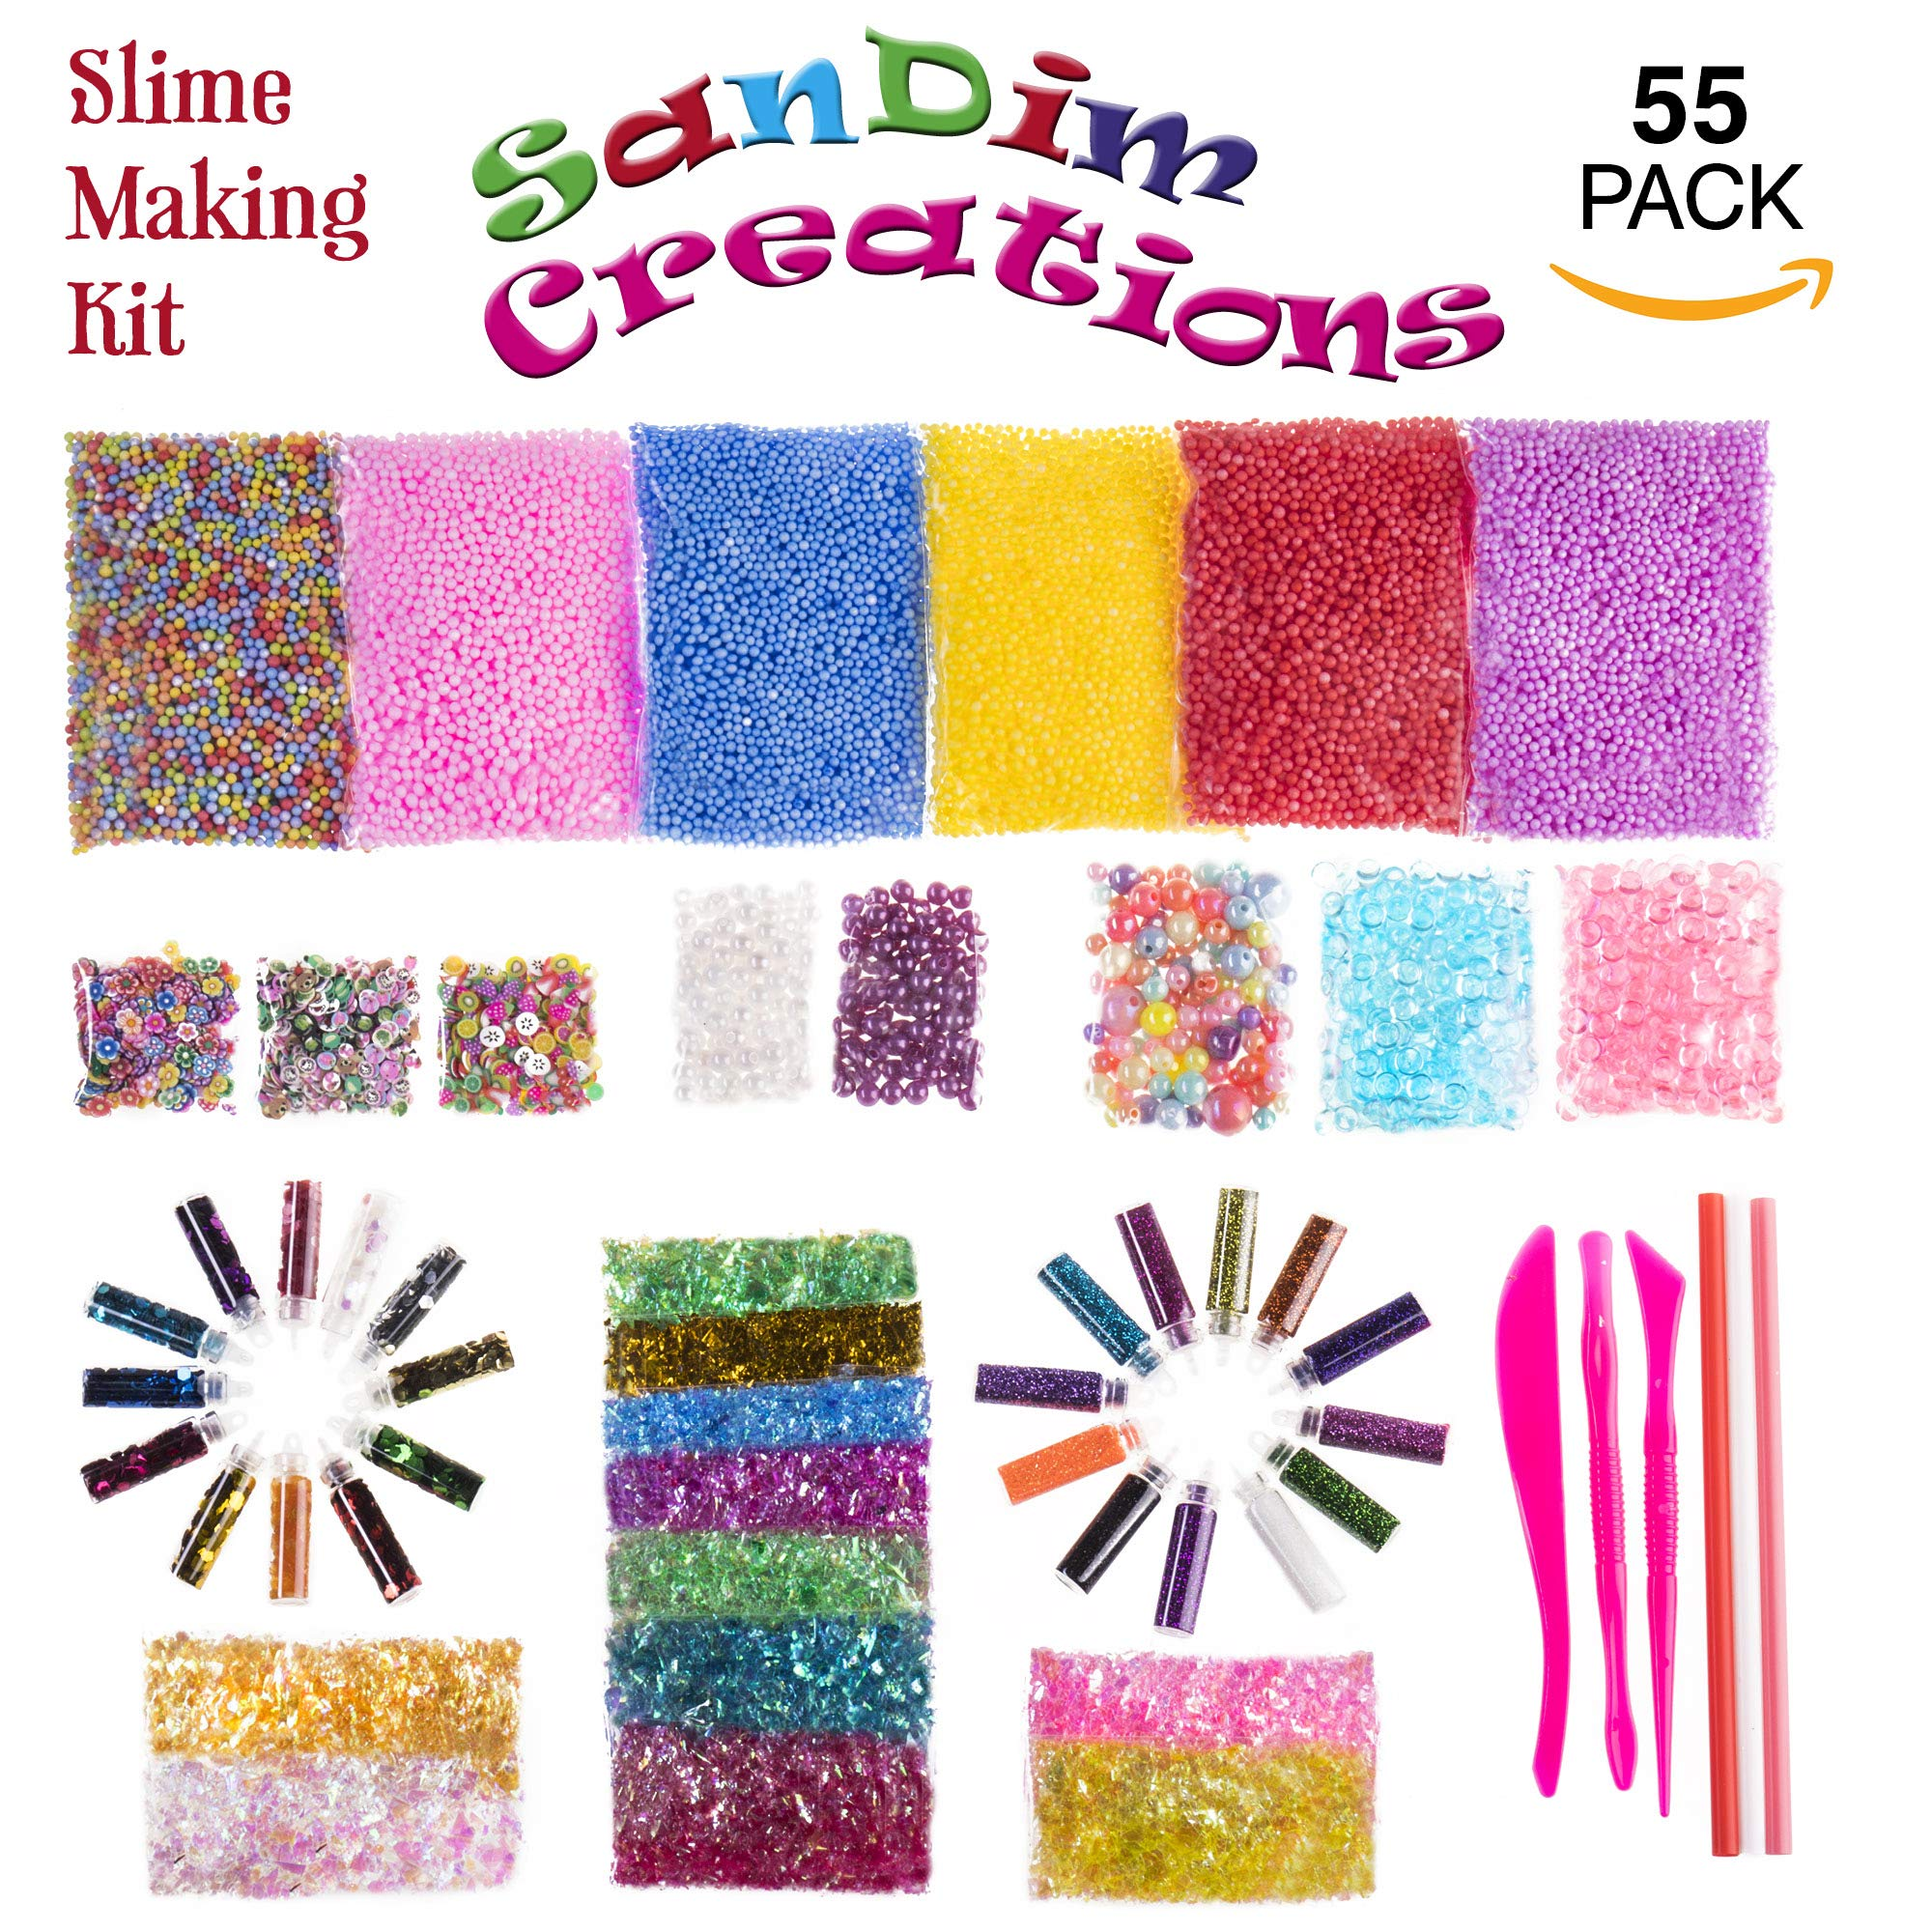 Slime Making Kit - 55 Pack Slime Supplies - Including Fishbowl Beads, Foam Balls, Glitter, Confetti, Slime Tools for DIY Craft - Perfect to Spike Your Kid's Creativity - by SanDim Creations